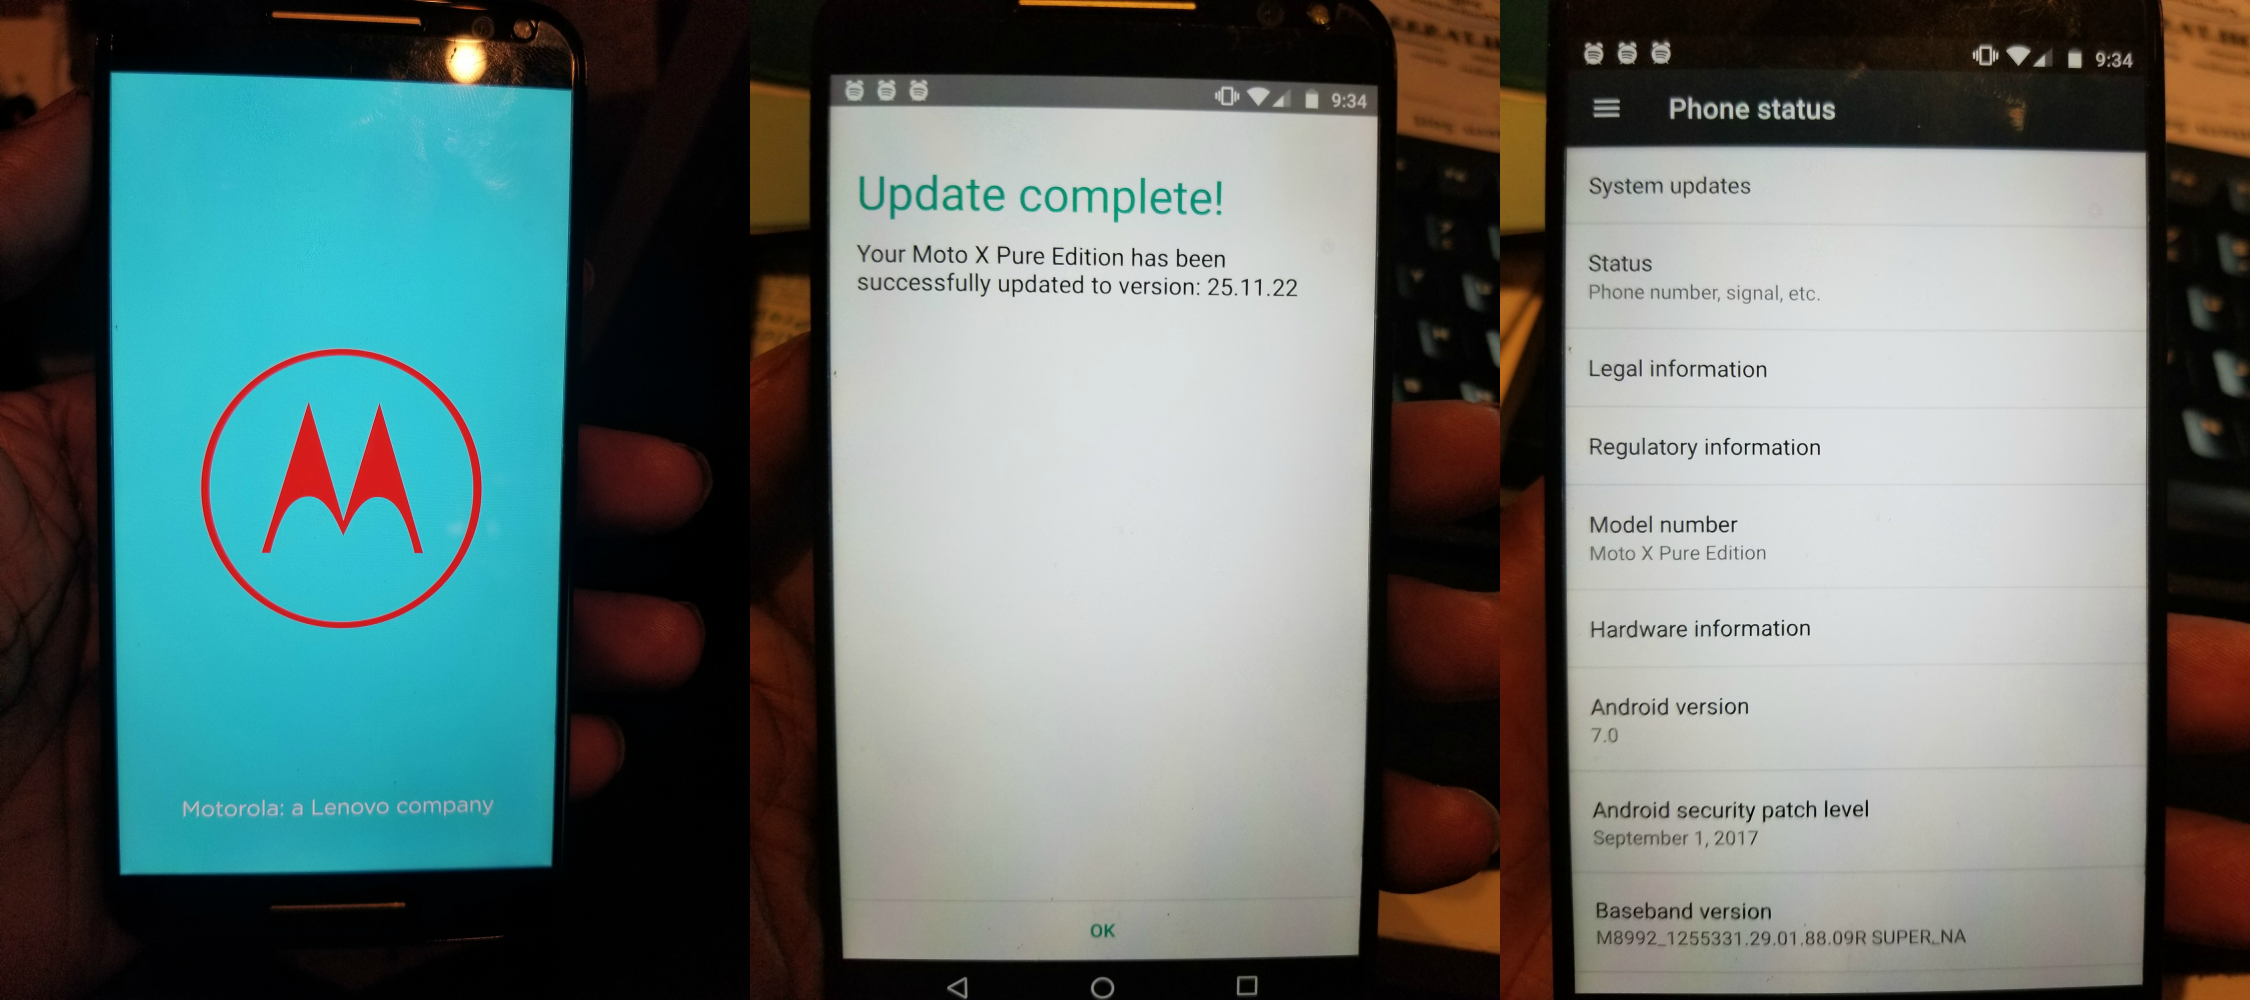 [Update: Rolling out to everyone] Moto X Pure Edition finally gets Android 7.0 Nougat update in US after a year of zero updates